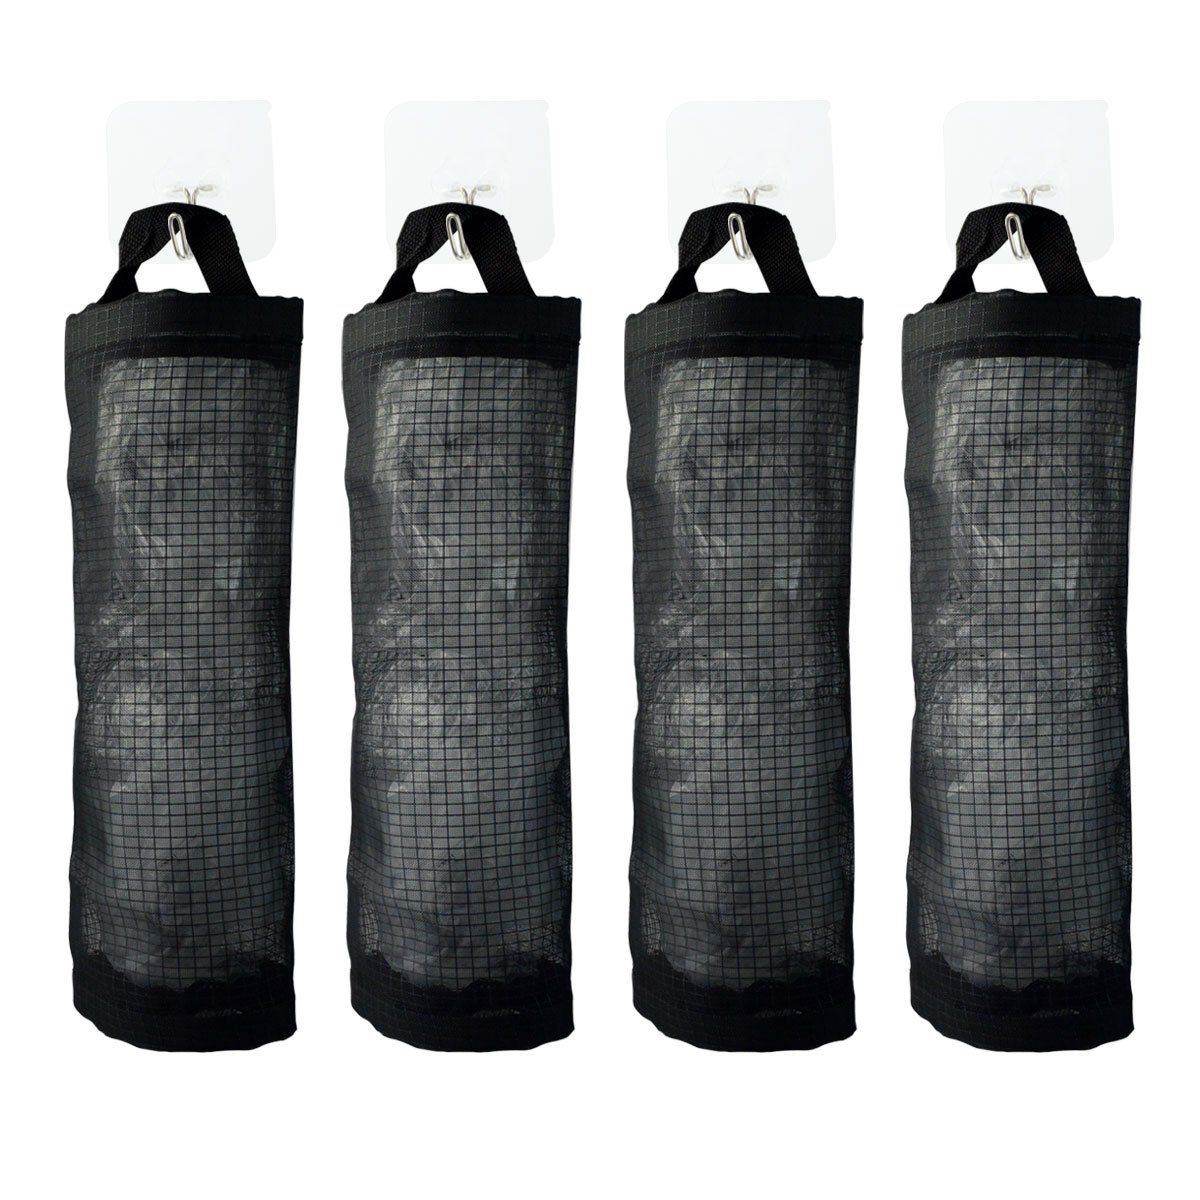 Garbage Bag Organizer,obmwang Pack of 4 Wall Mount Mesh Garbage Bag Holders with 4 Hooks, Hanging Folding Mesh Trash Waste Grocery Bag Storage Bag Dispenser Organizer Holder for Home and Kitchen